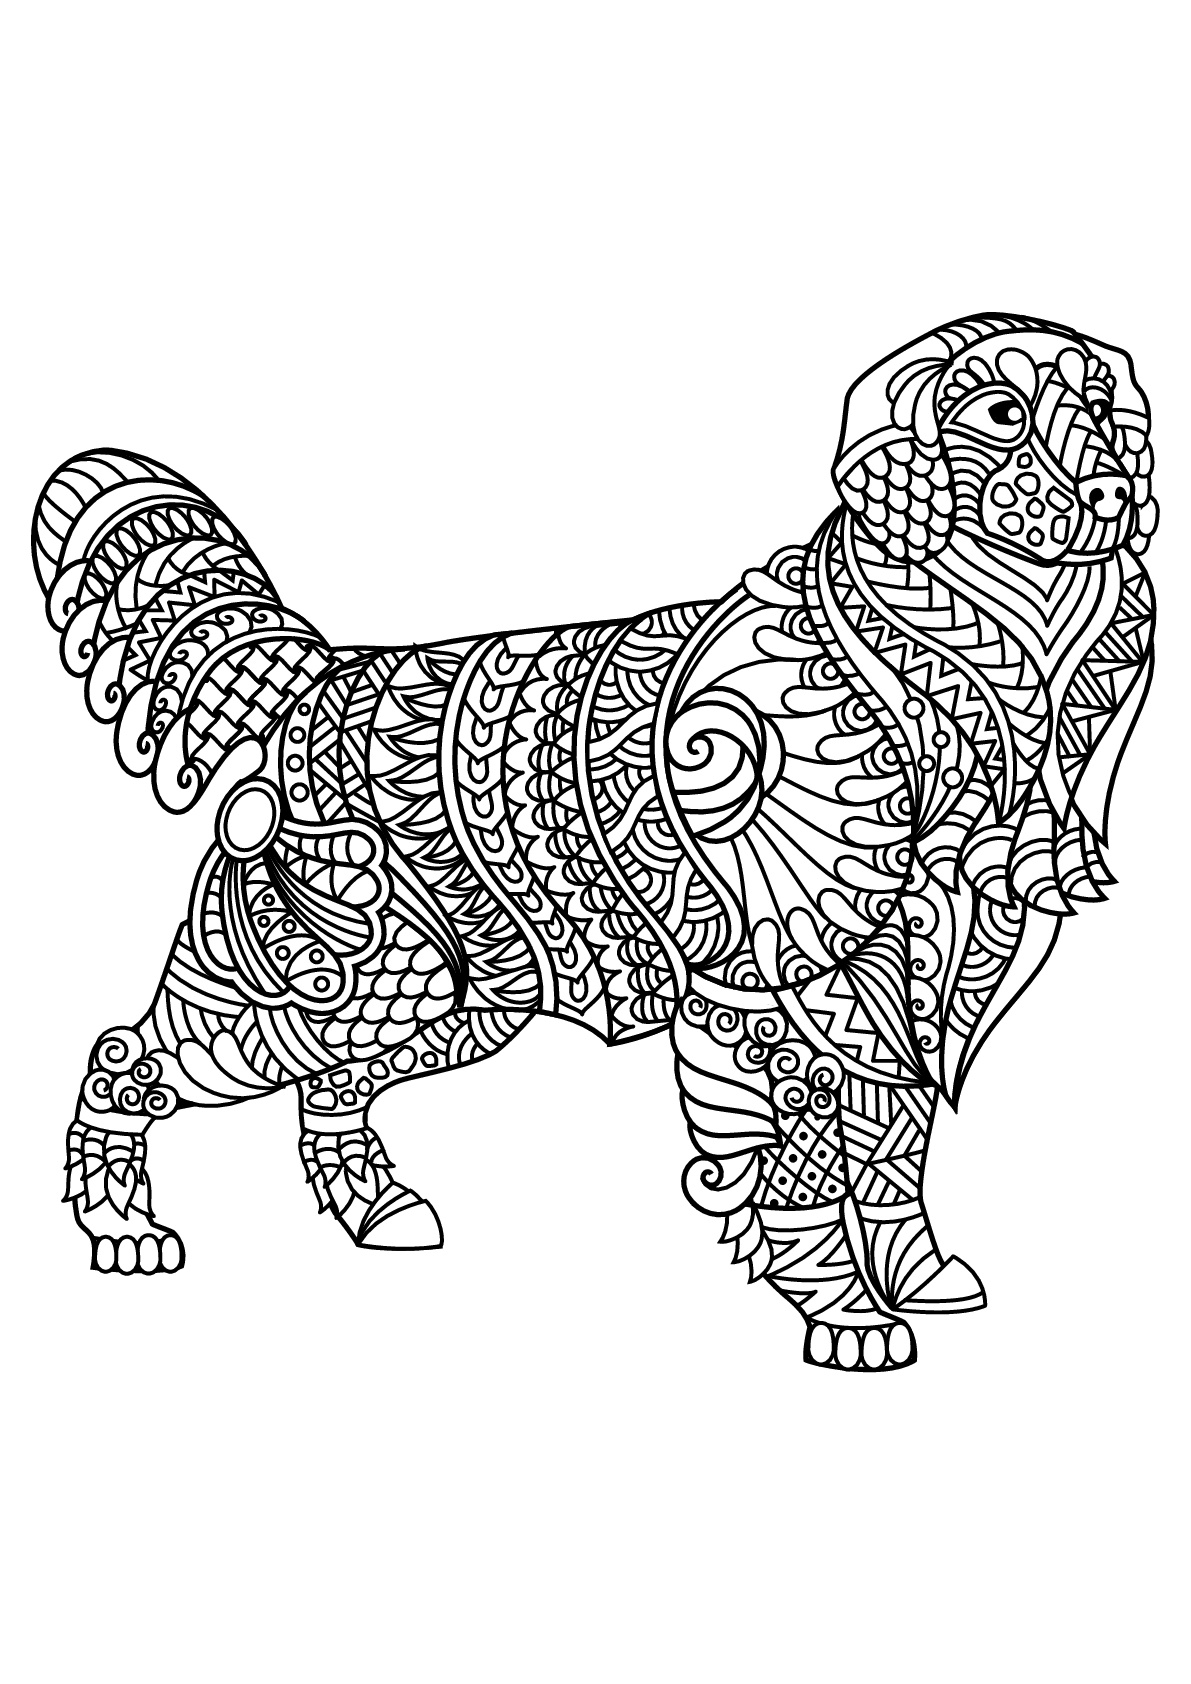 coloring dog for kids dog free to color for kids dogs kids coloring pages coloring for kids dog